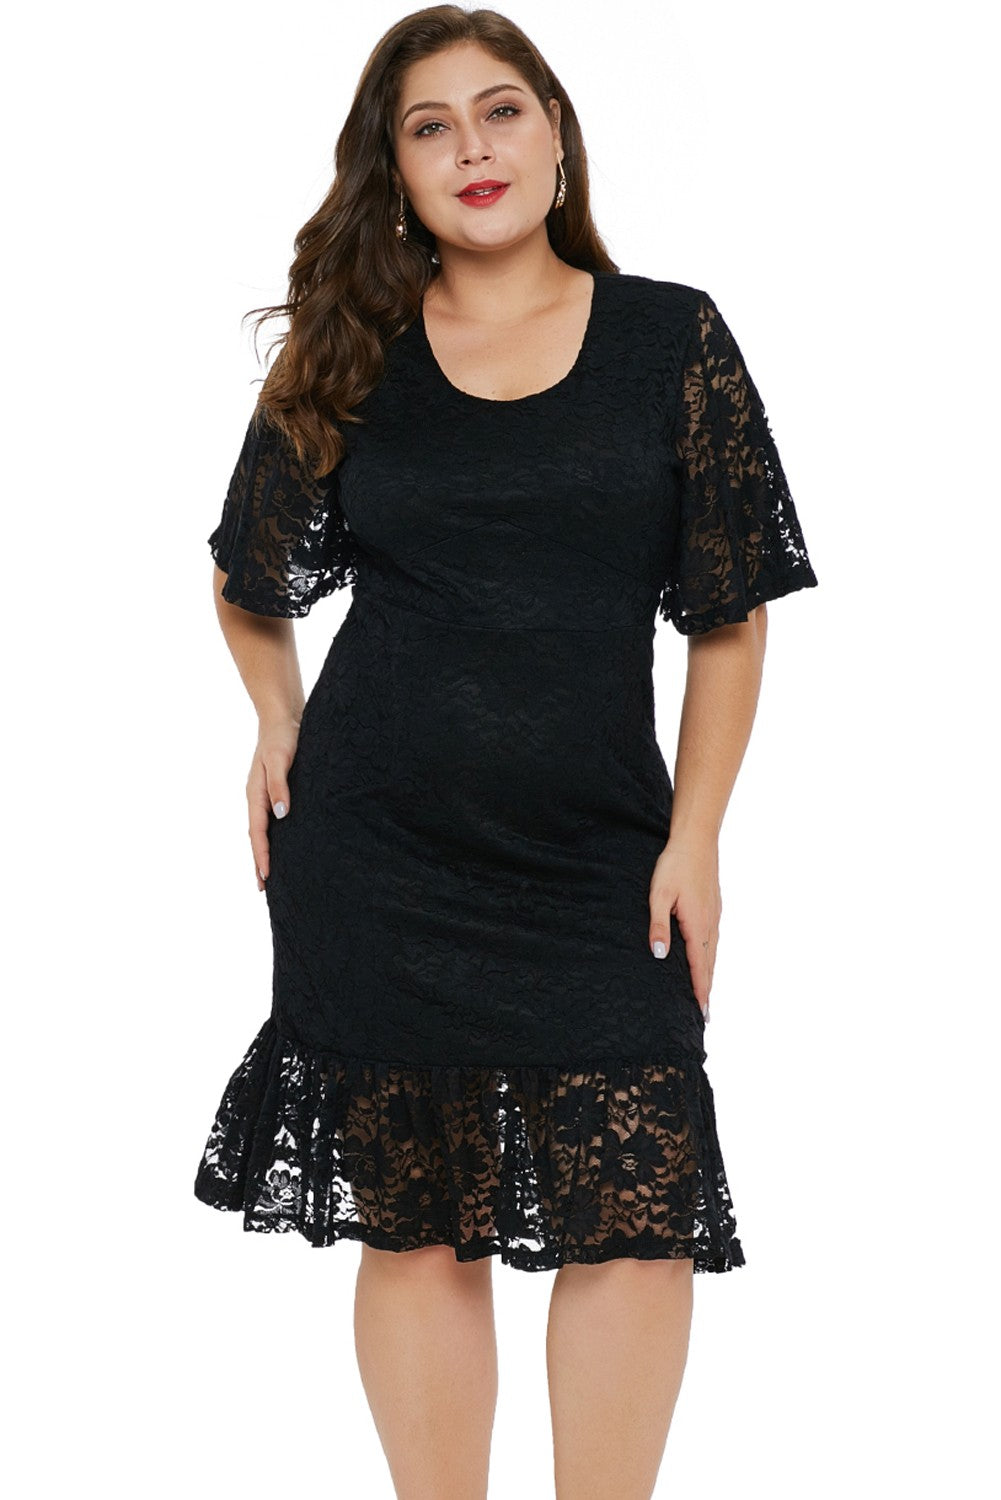 Black Plus Size Lace Dress